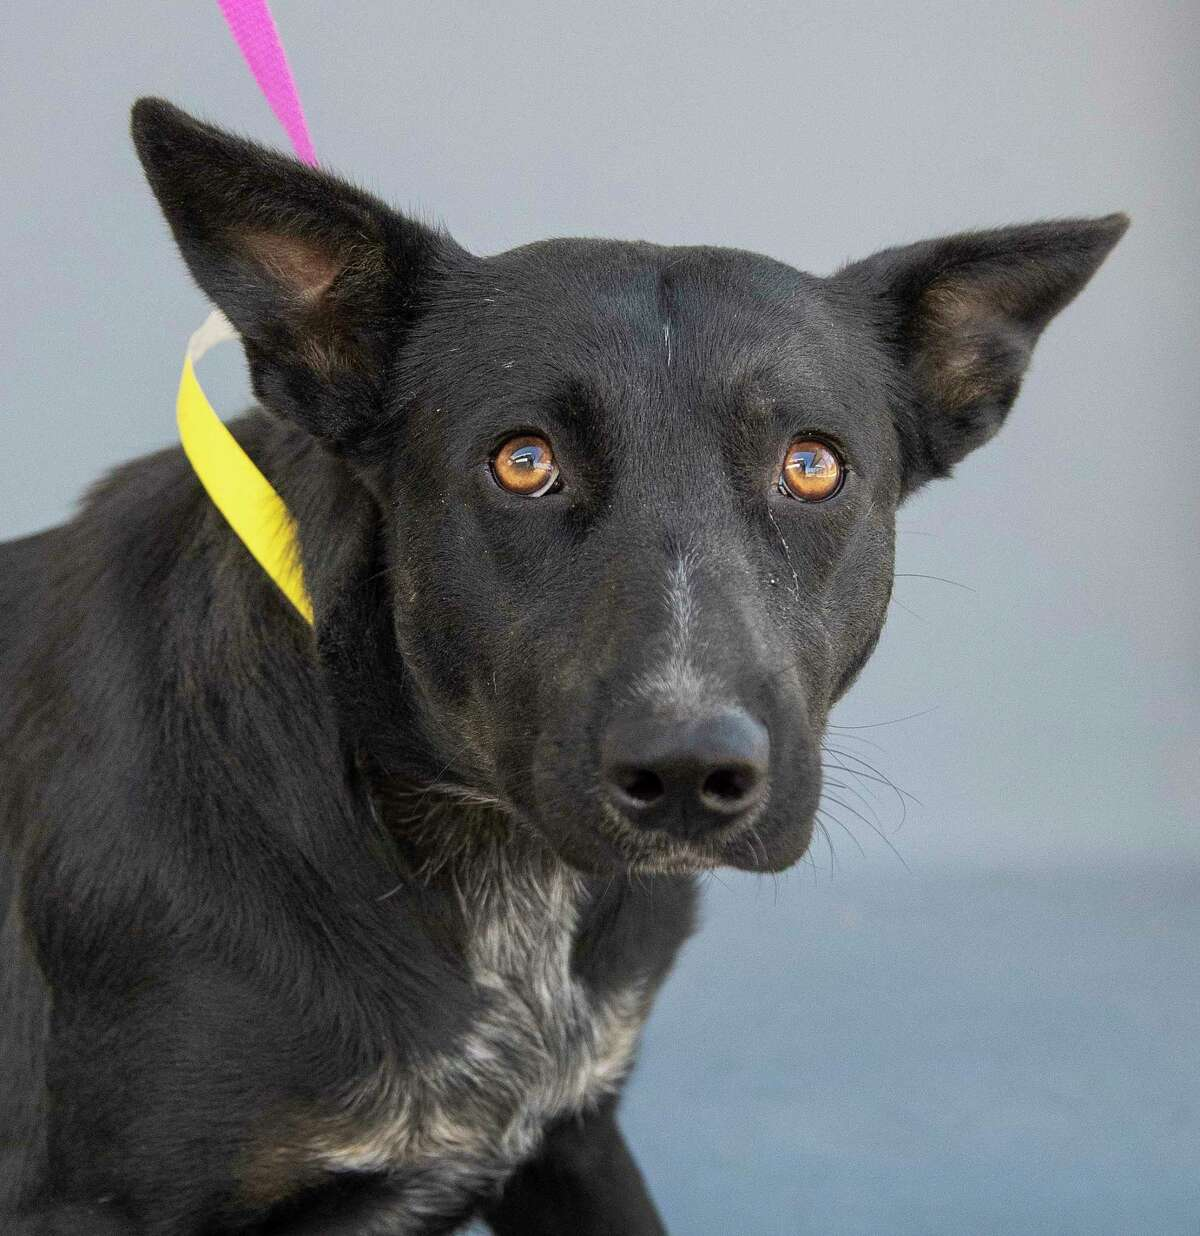 Sombra (A564117) is a 1-year-old, Australian cattle dog mix, available for adoption from Harris County Pets.